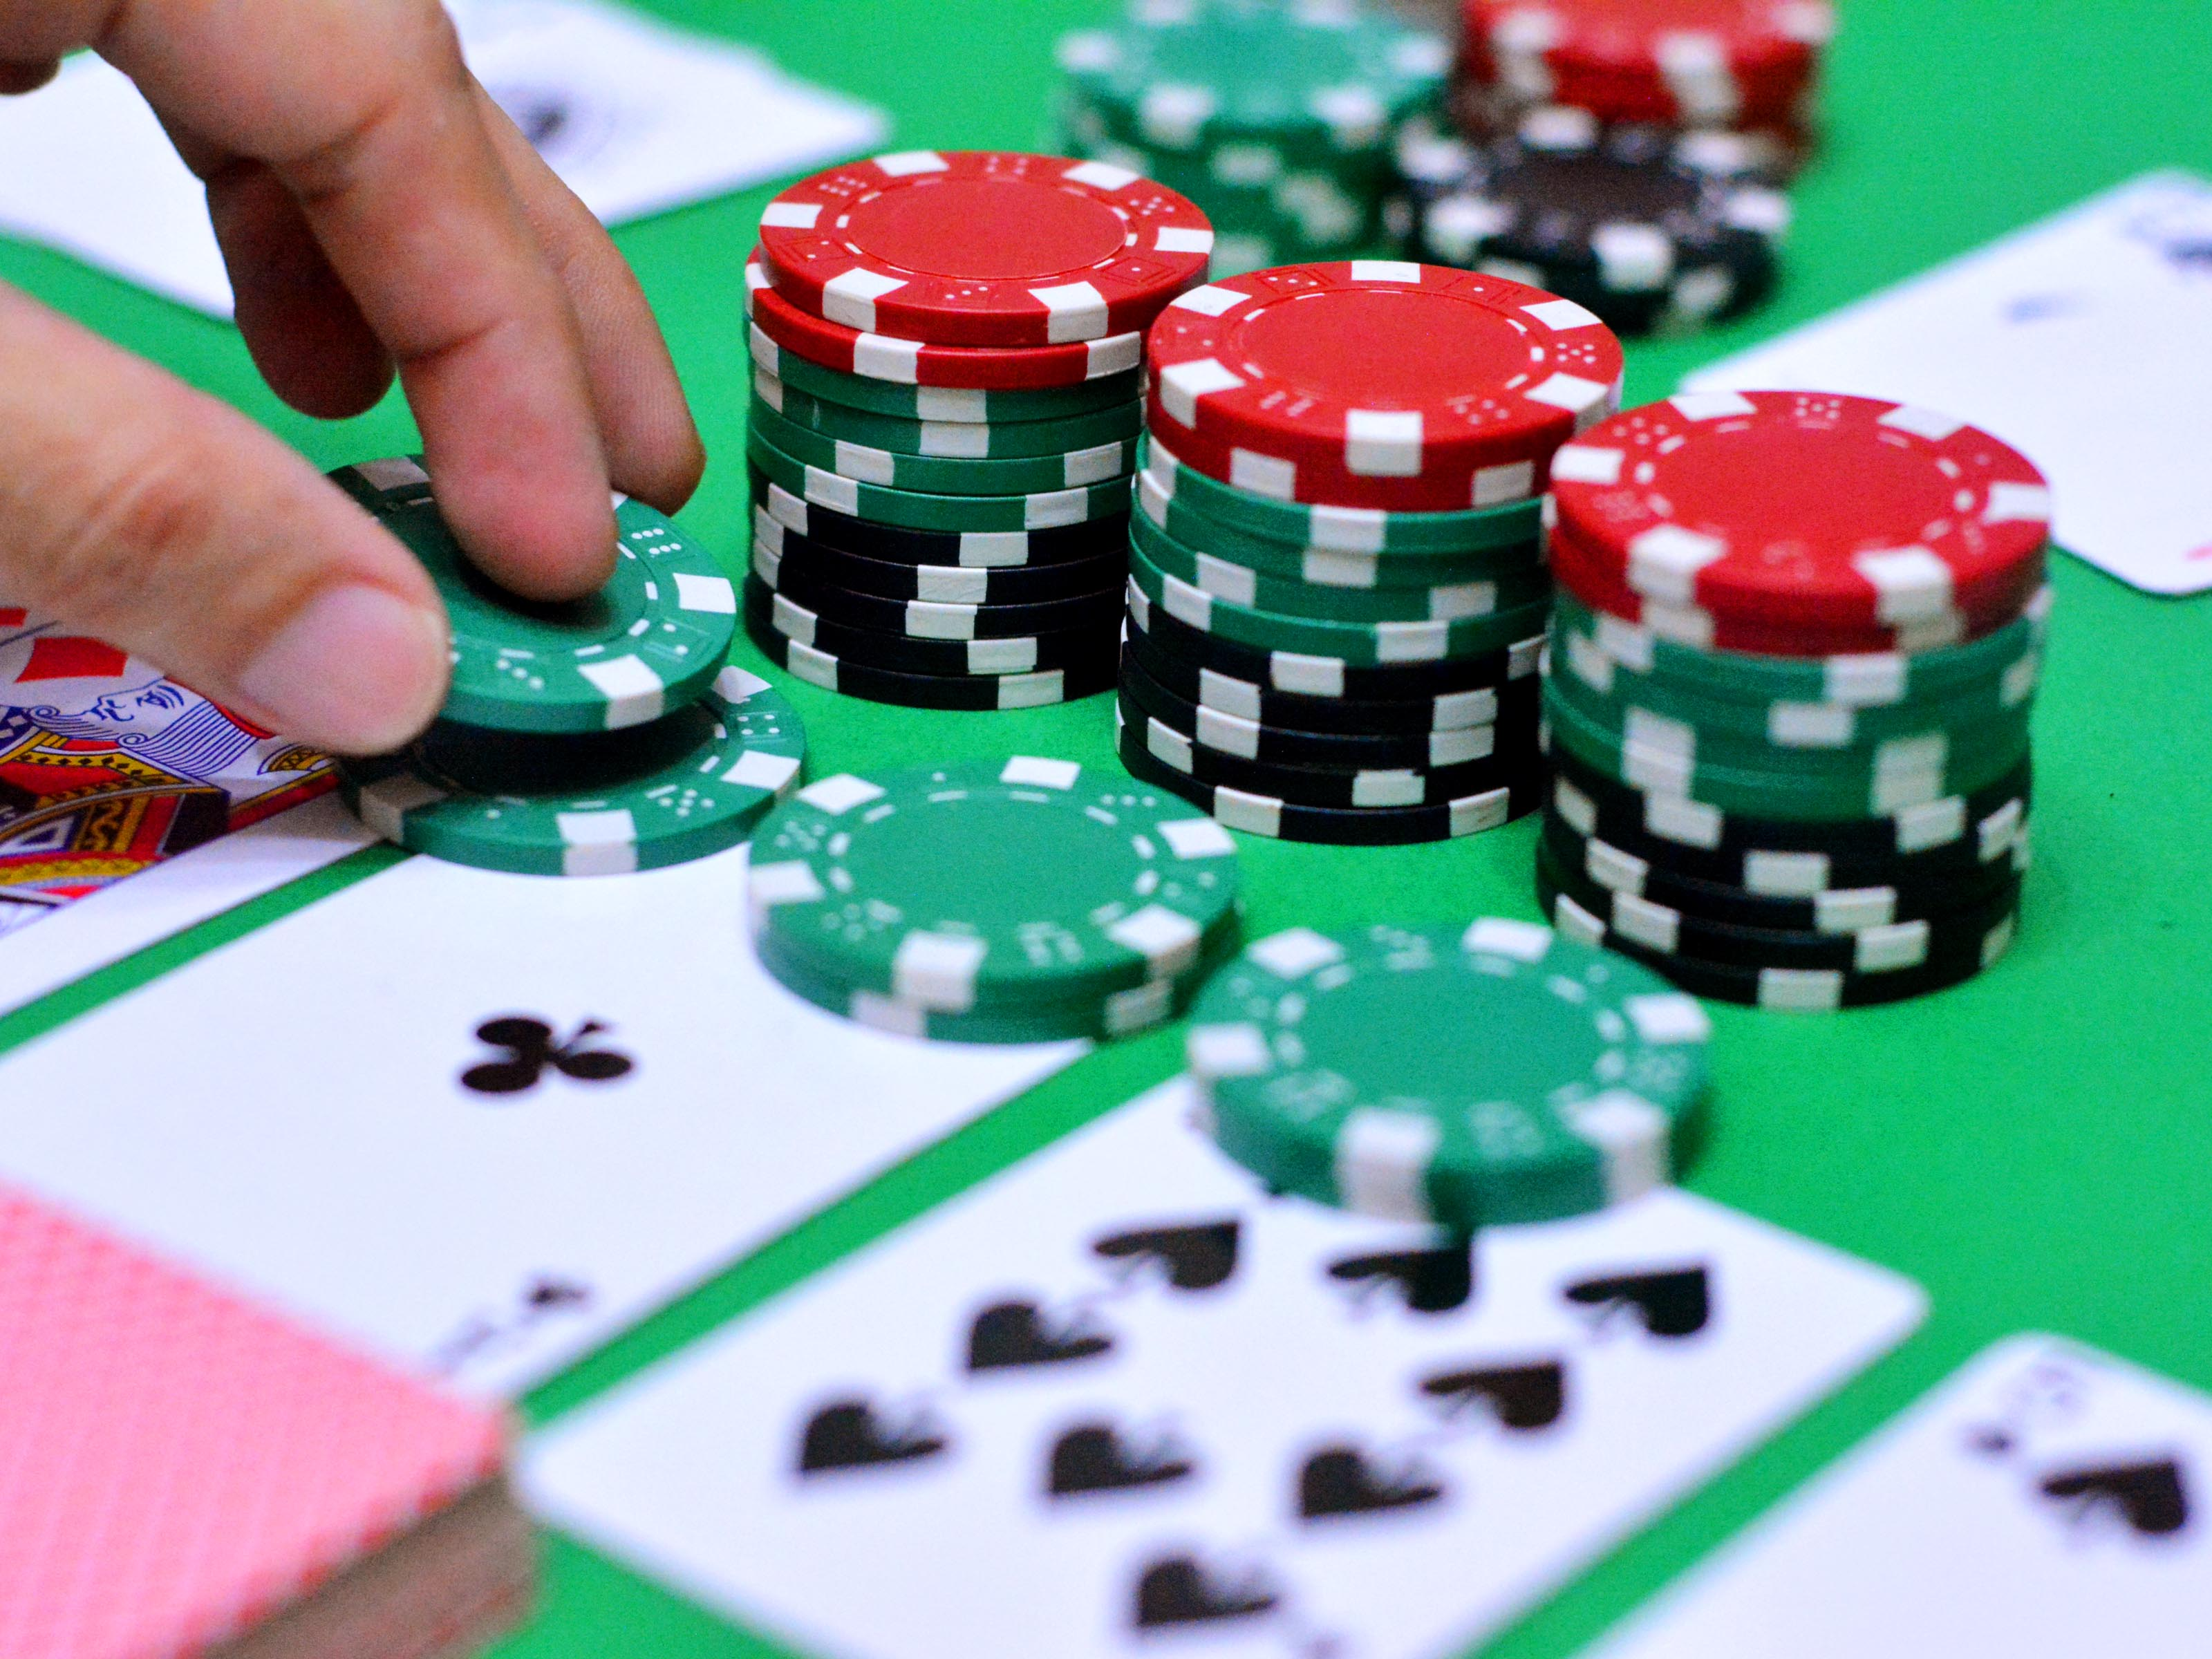 Some Dishonest Tactics of Rogue Online Casinos